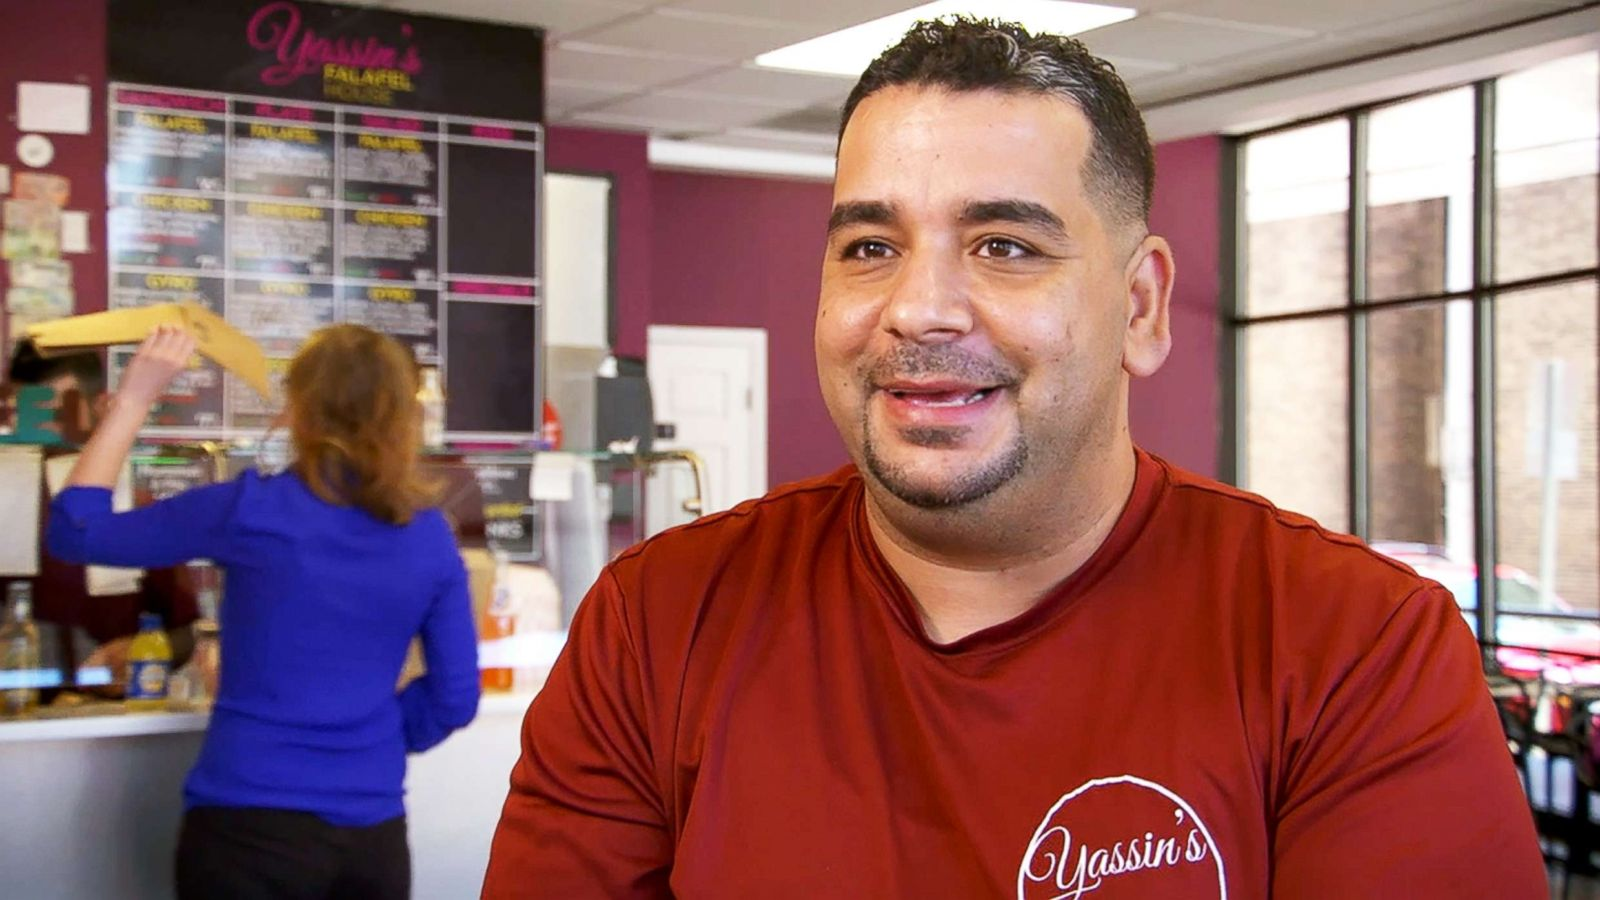 abcnews.go.com - Danielle Genet - Refugee-owned falafel shop serves meals to government employees during shutdown